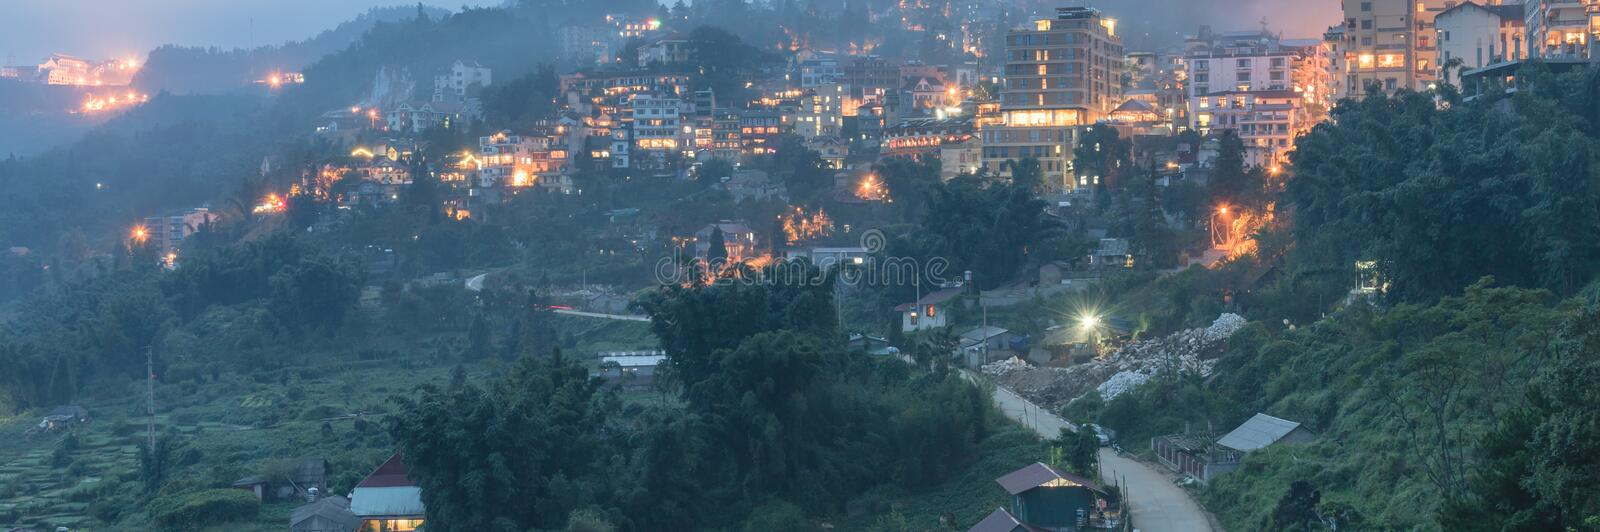 Sapa mountain town in northern Vietnam at twilight royalty free stock photography